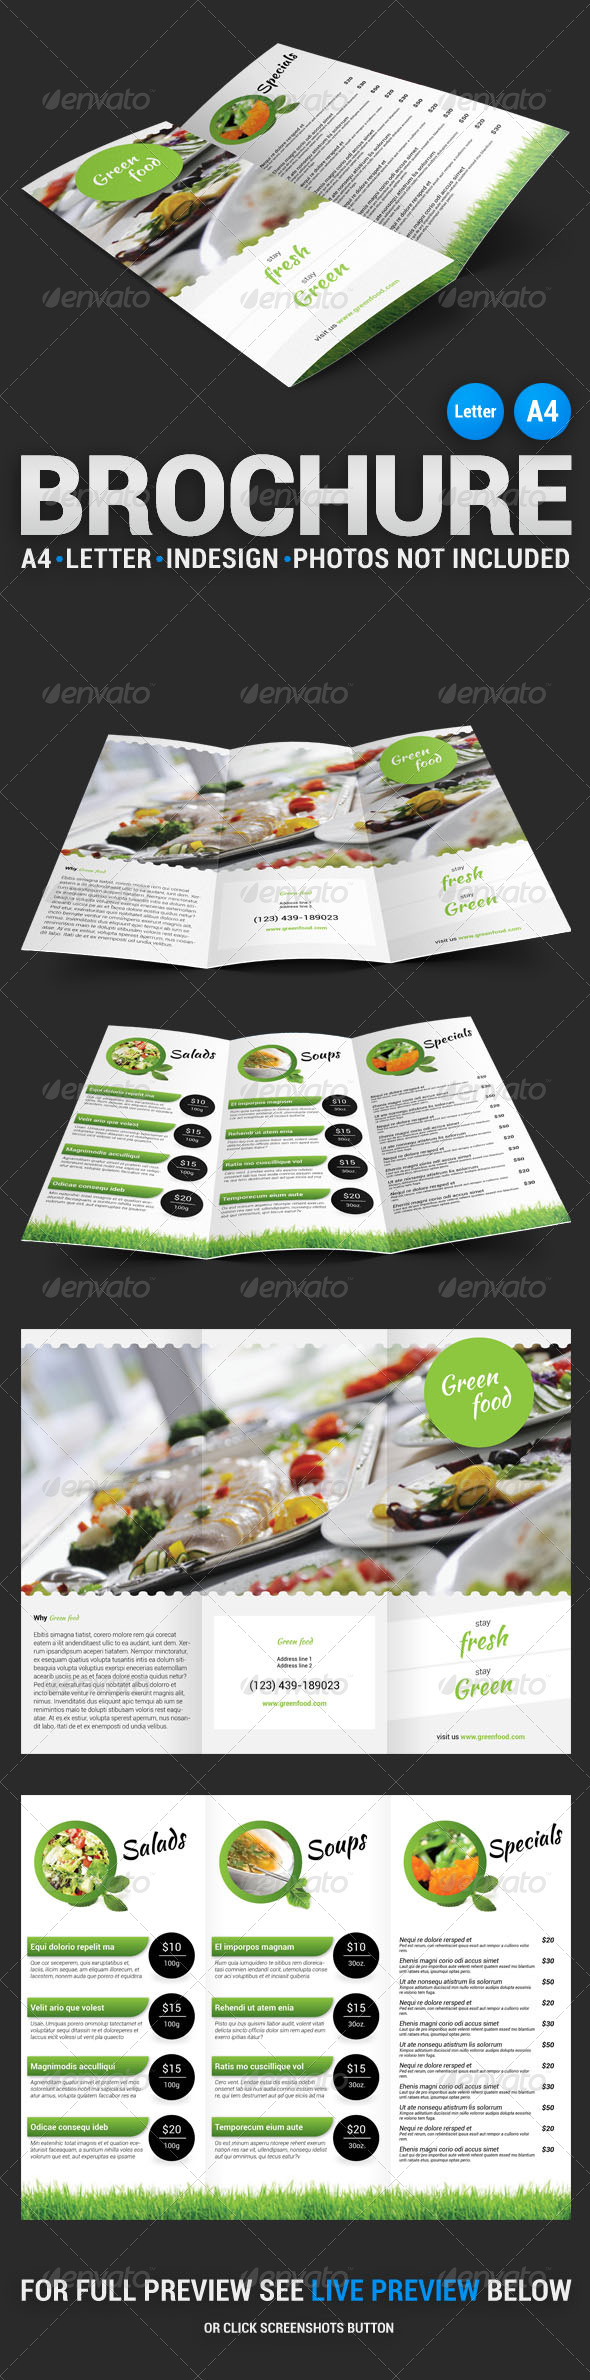 Famous 1 Page Website Template Tall 10 Best Resume Writers Regular 100 Square Pool Template 1099 Employee Contract Template Young 2 Column Notes Template Fresh2 Page Resume Format Doc Green Food Tri Fold Brochure | Print..., Graphic Prints And Design ..